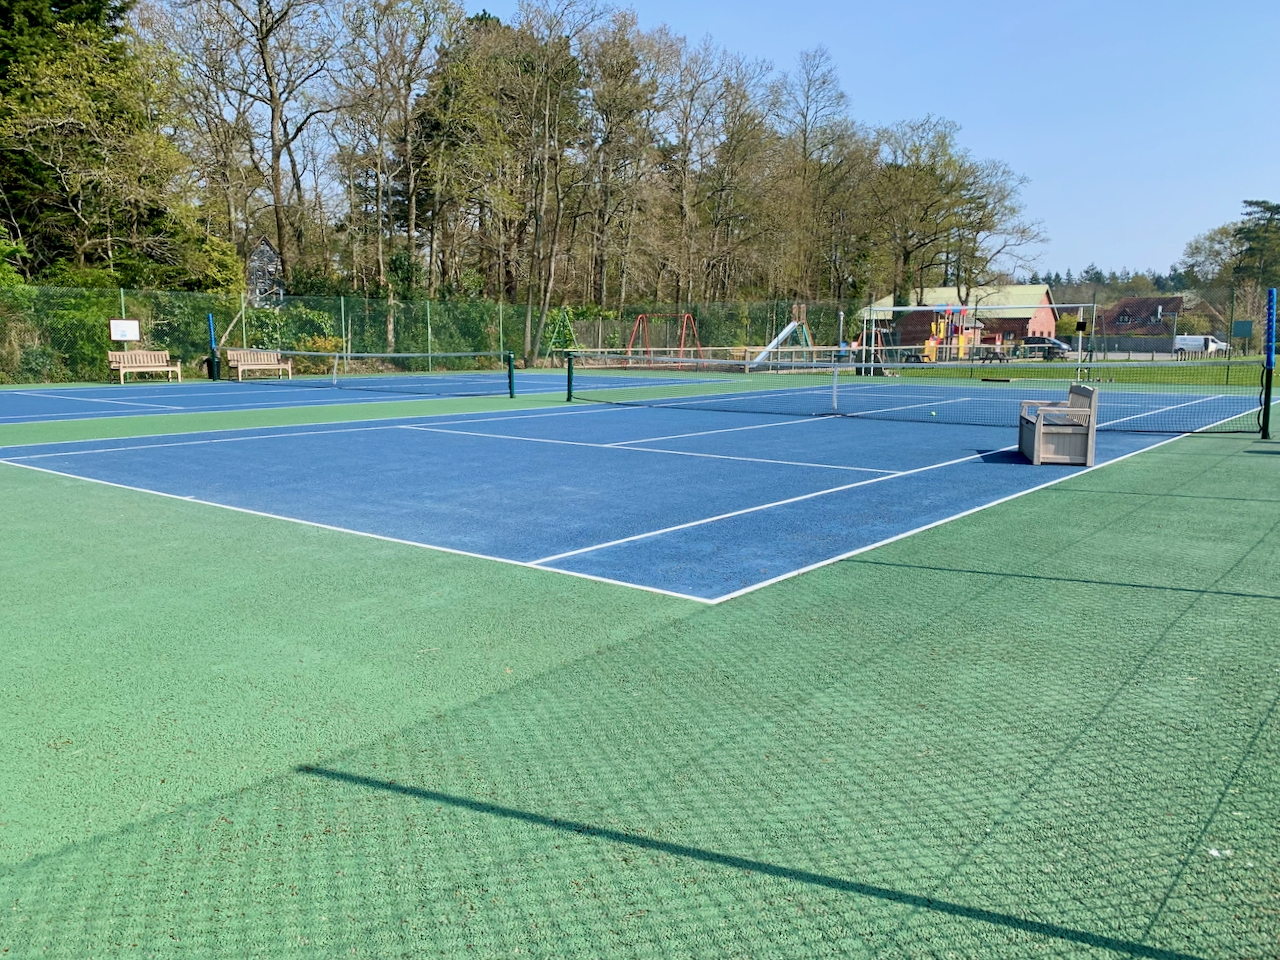 Two blue tennis courts with green tarmac surround. The Acland Hall can be seen in the background.